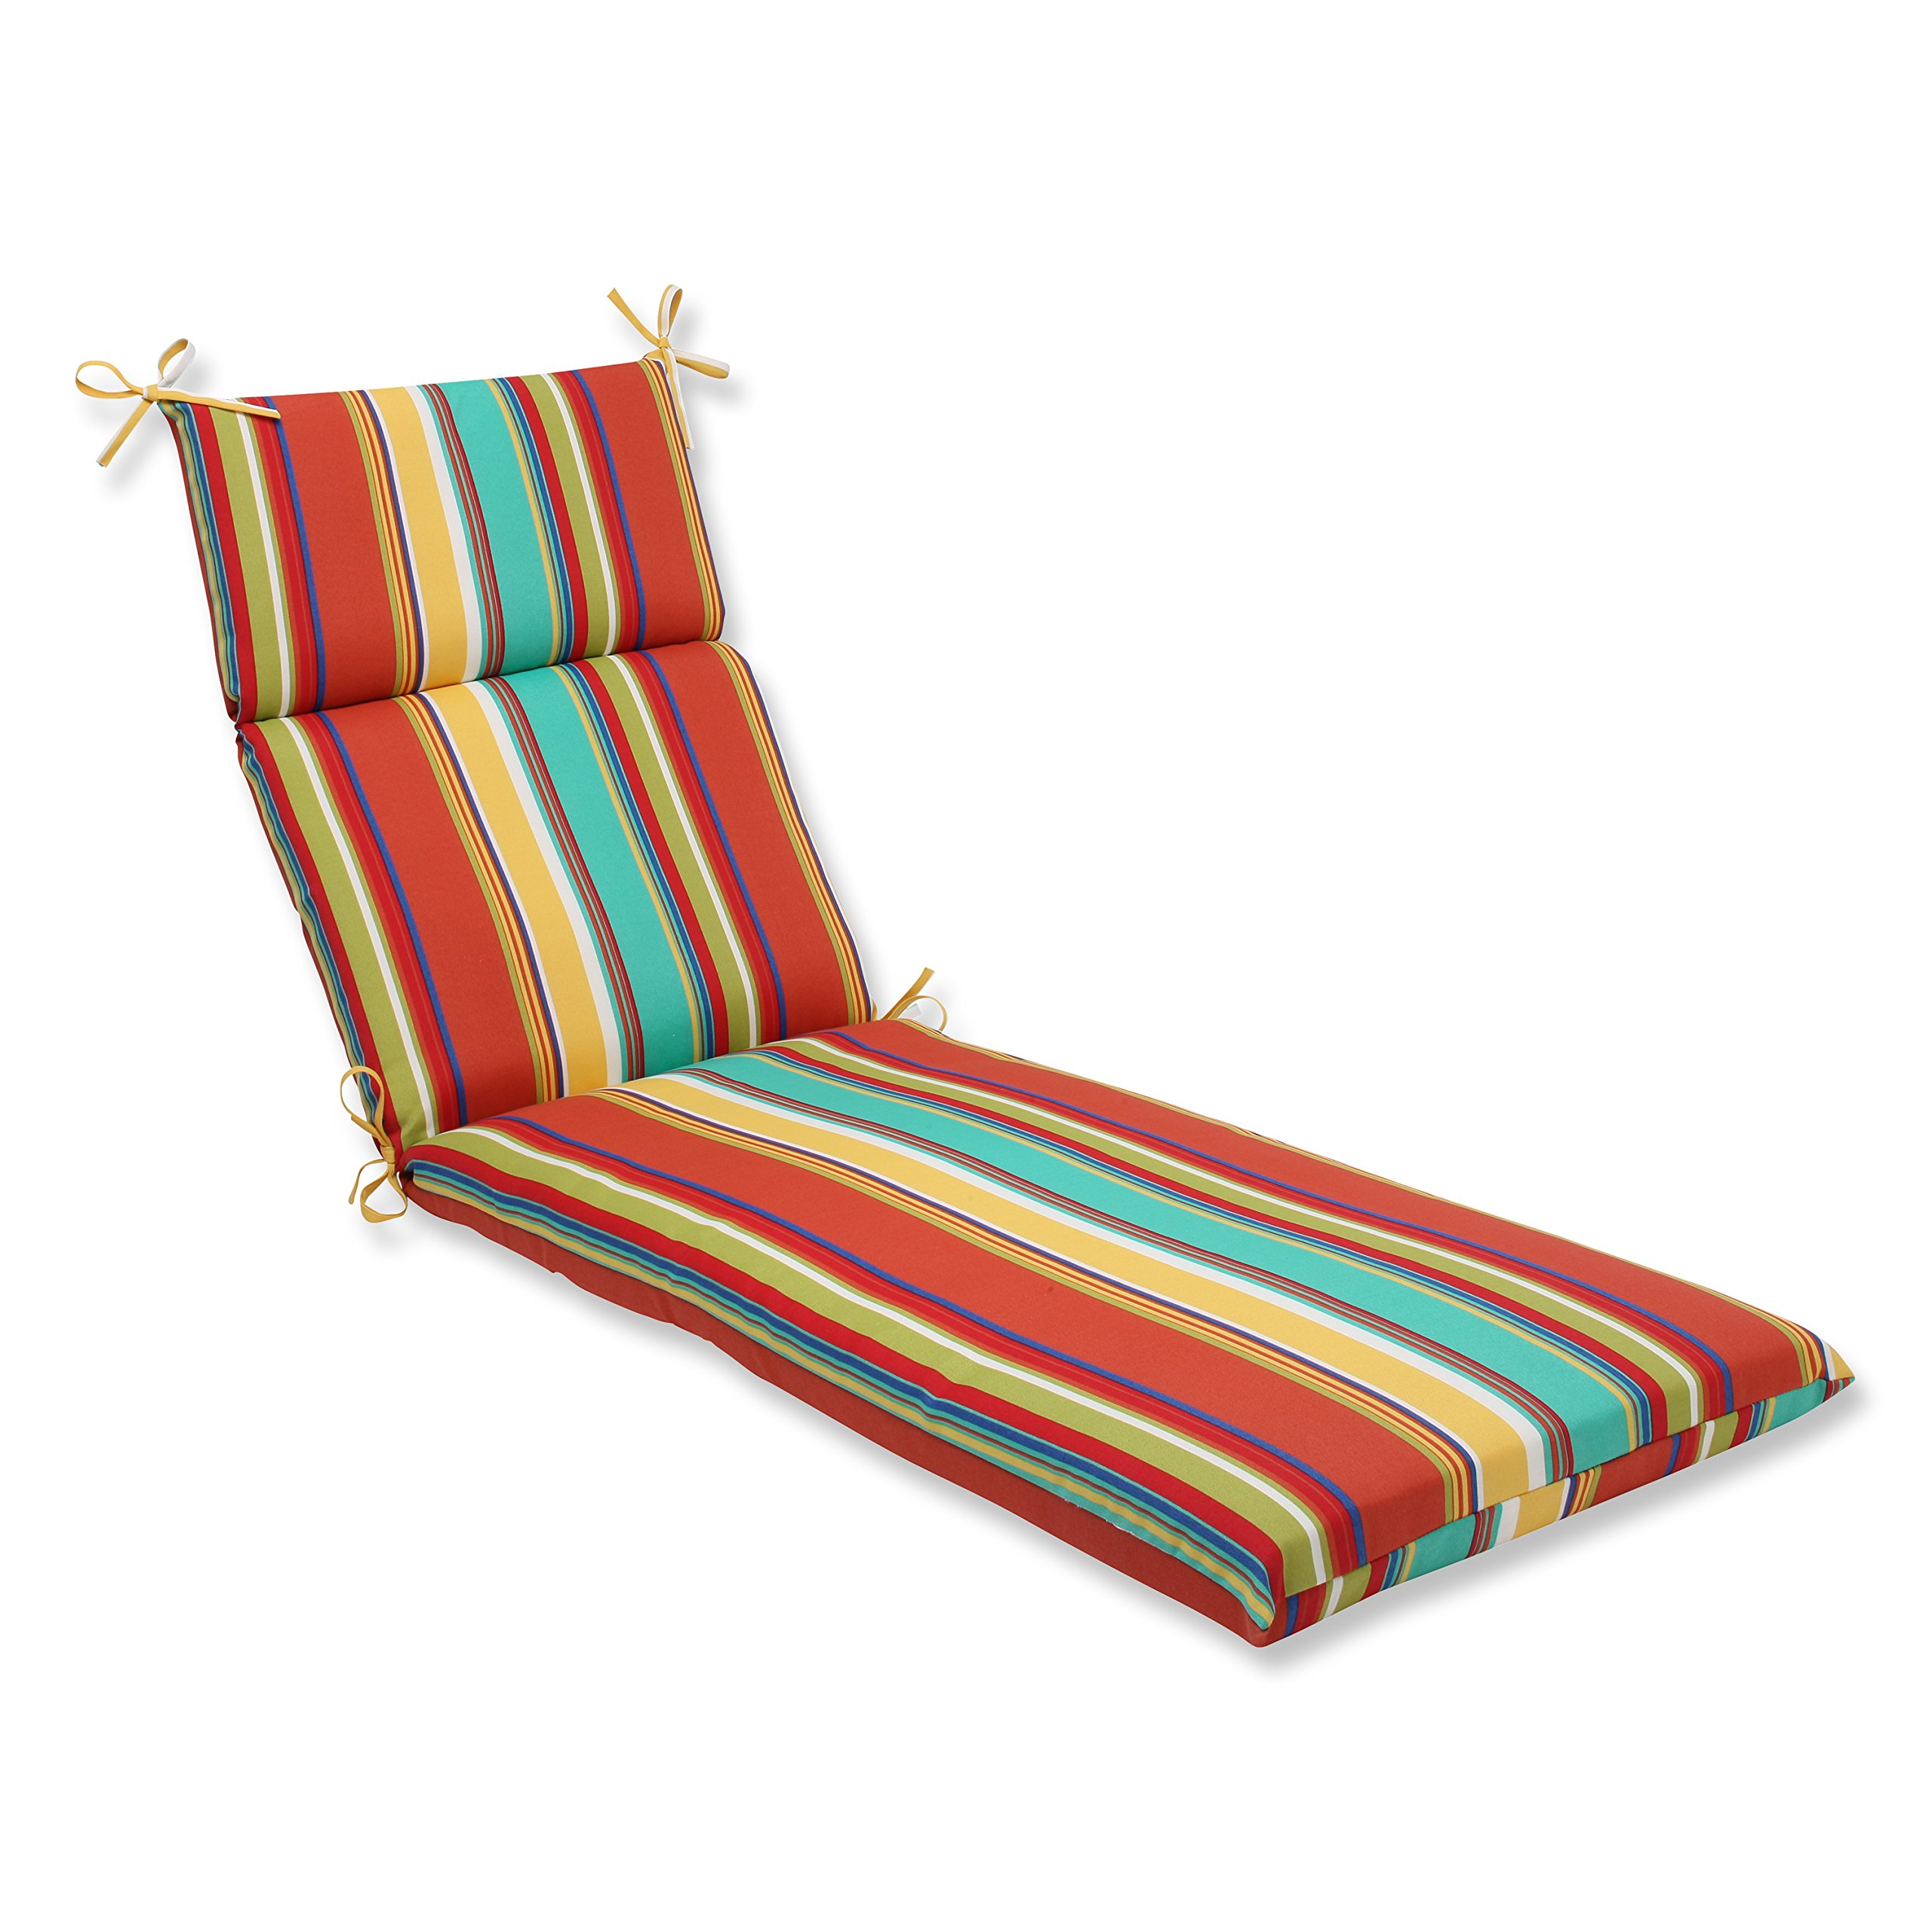 Pillow Perfect Outdoor Westport Spring Chaise Lounge Cushion, Multicolored